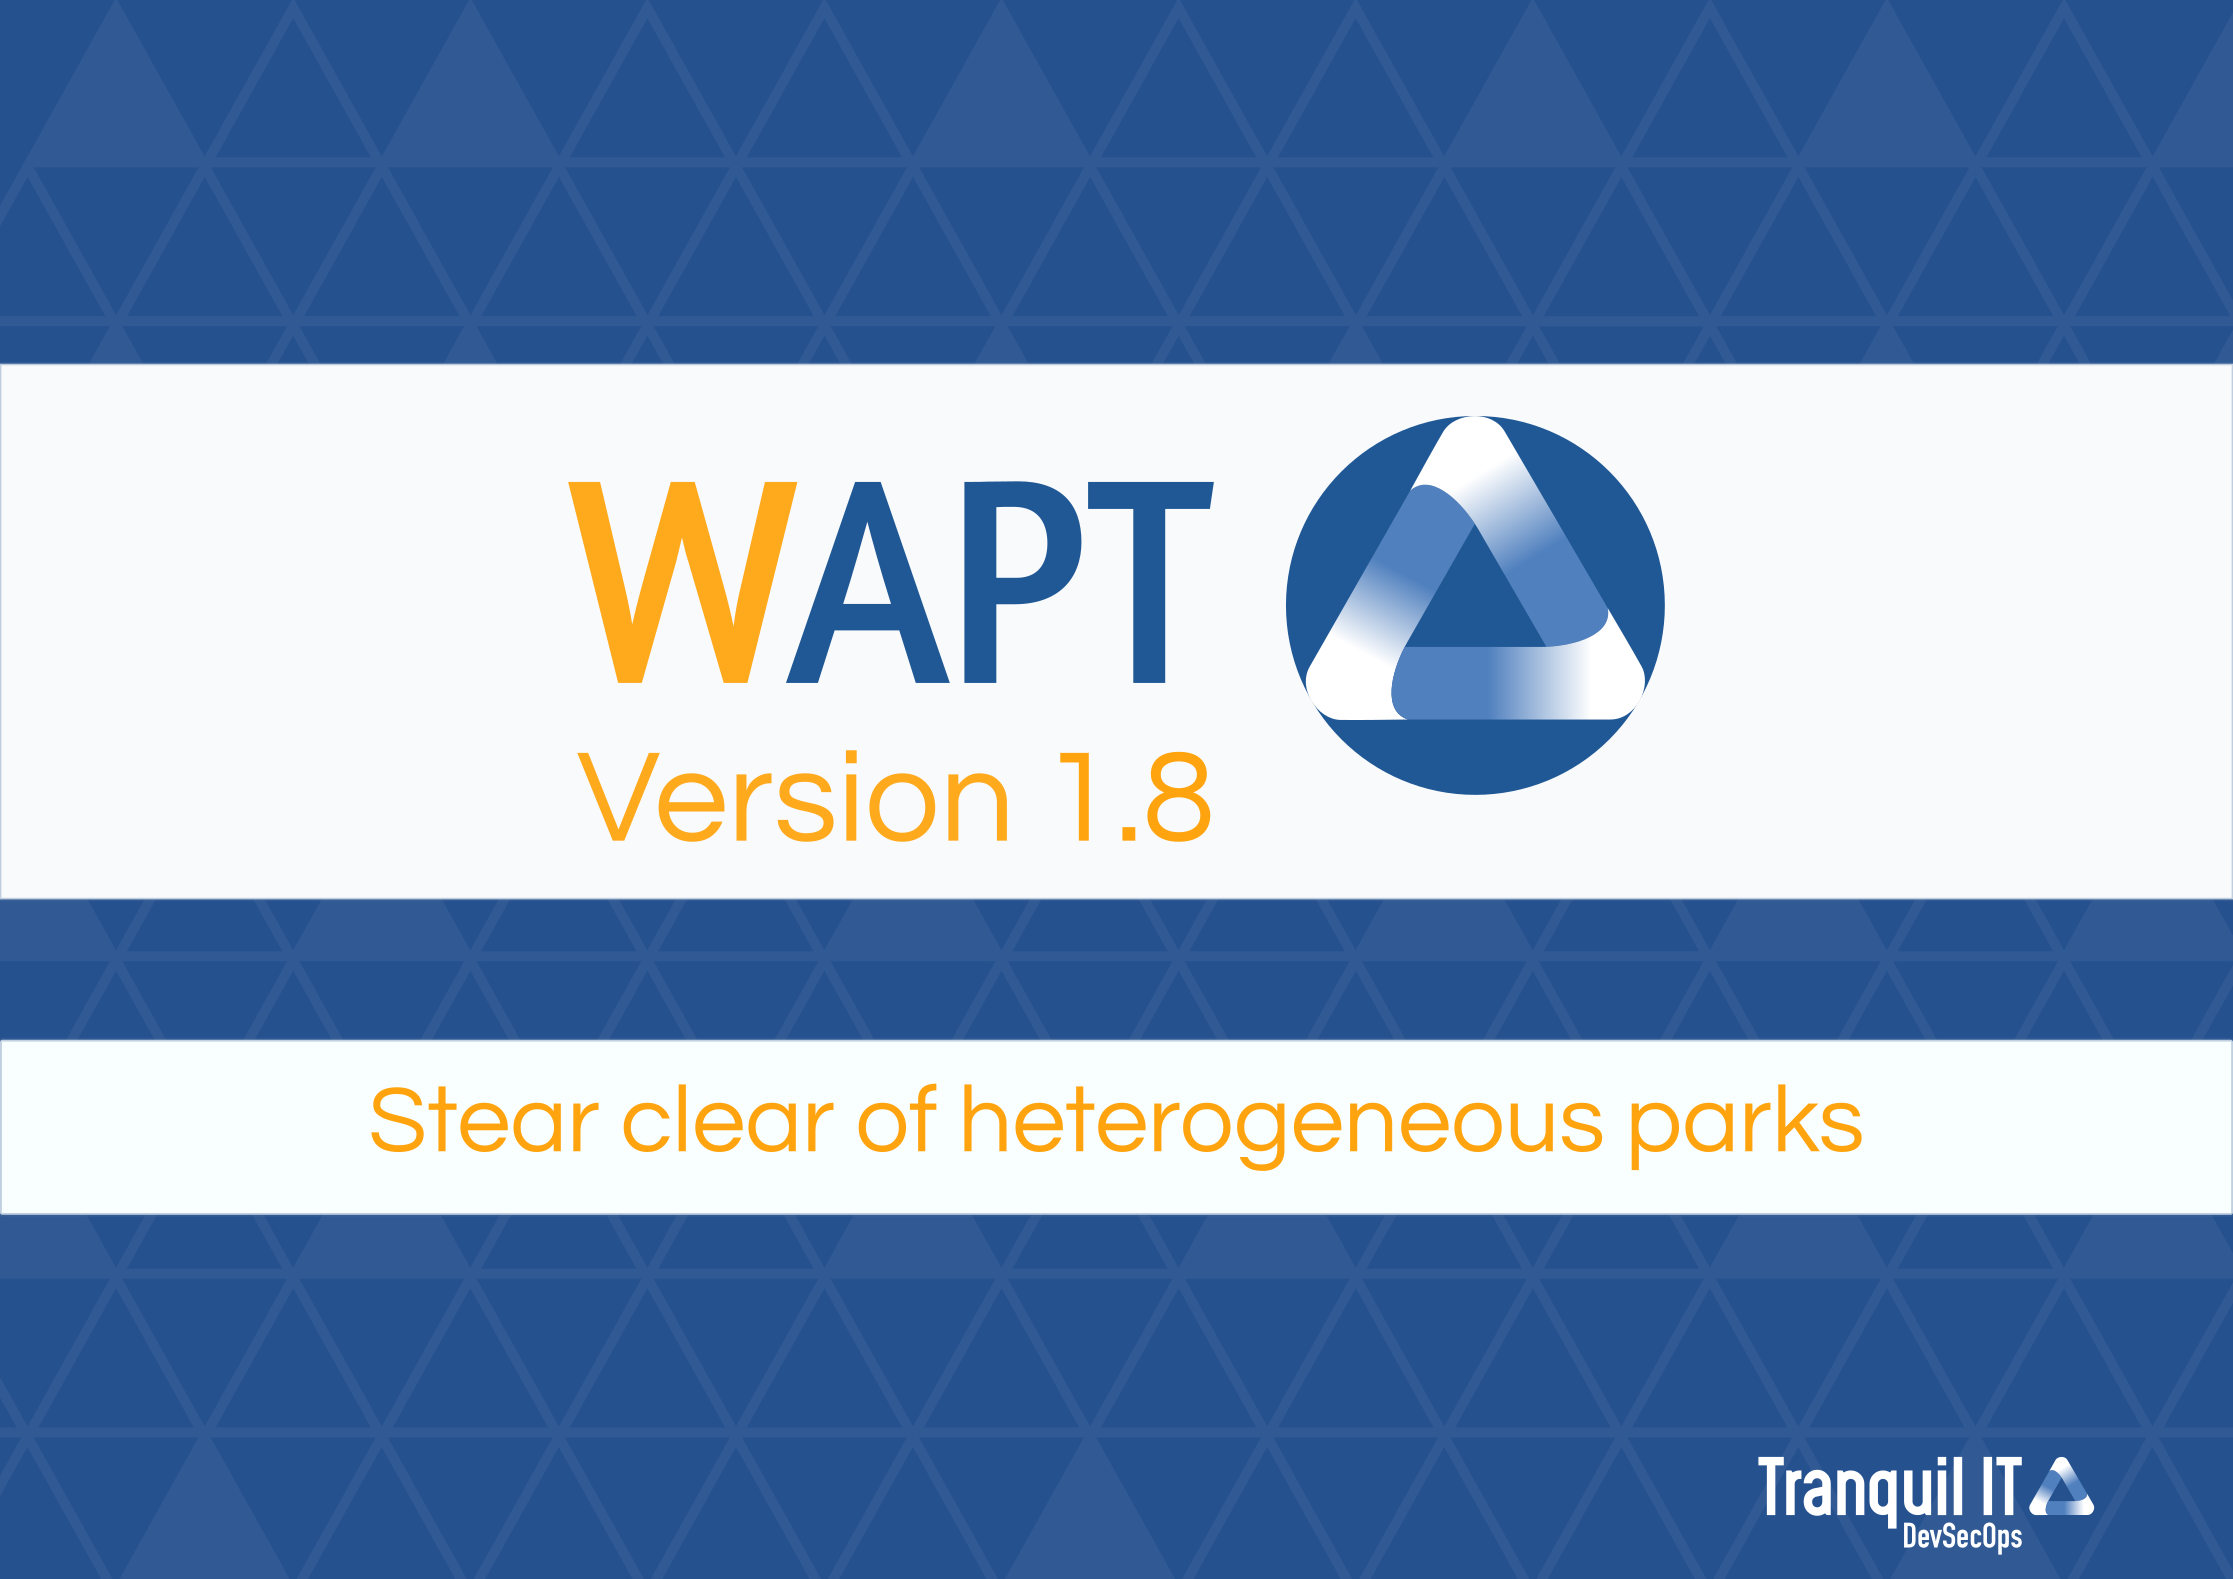 WAPT 1.8 : Stear clear of heterogeneous parks!